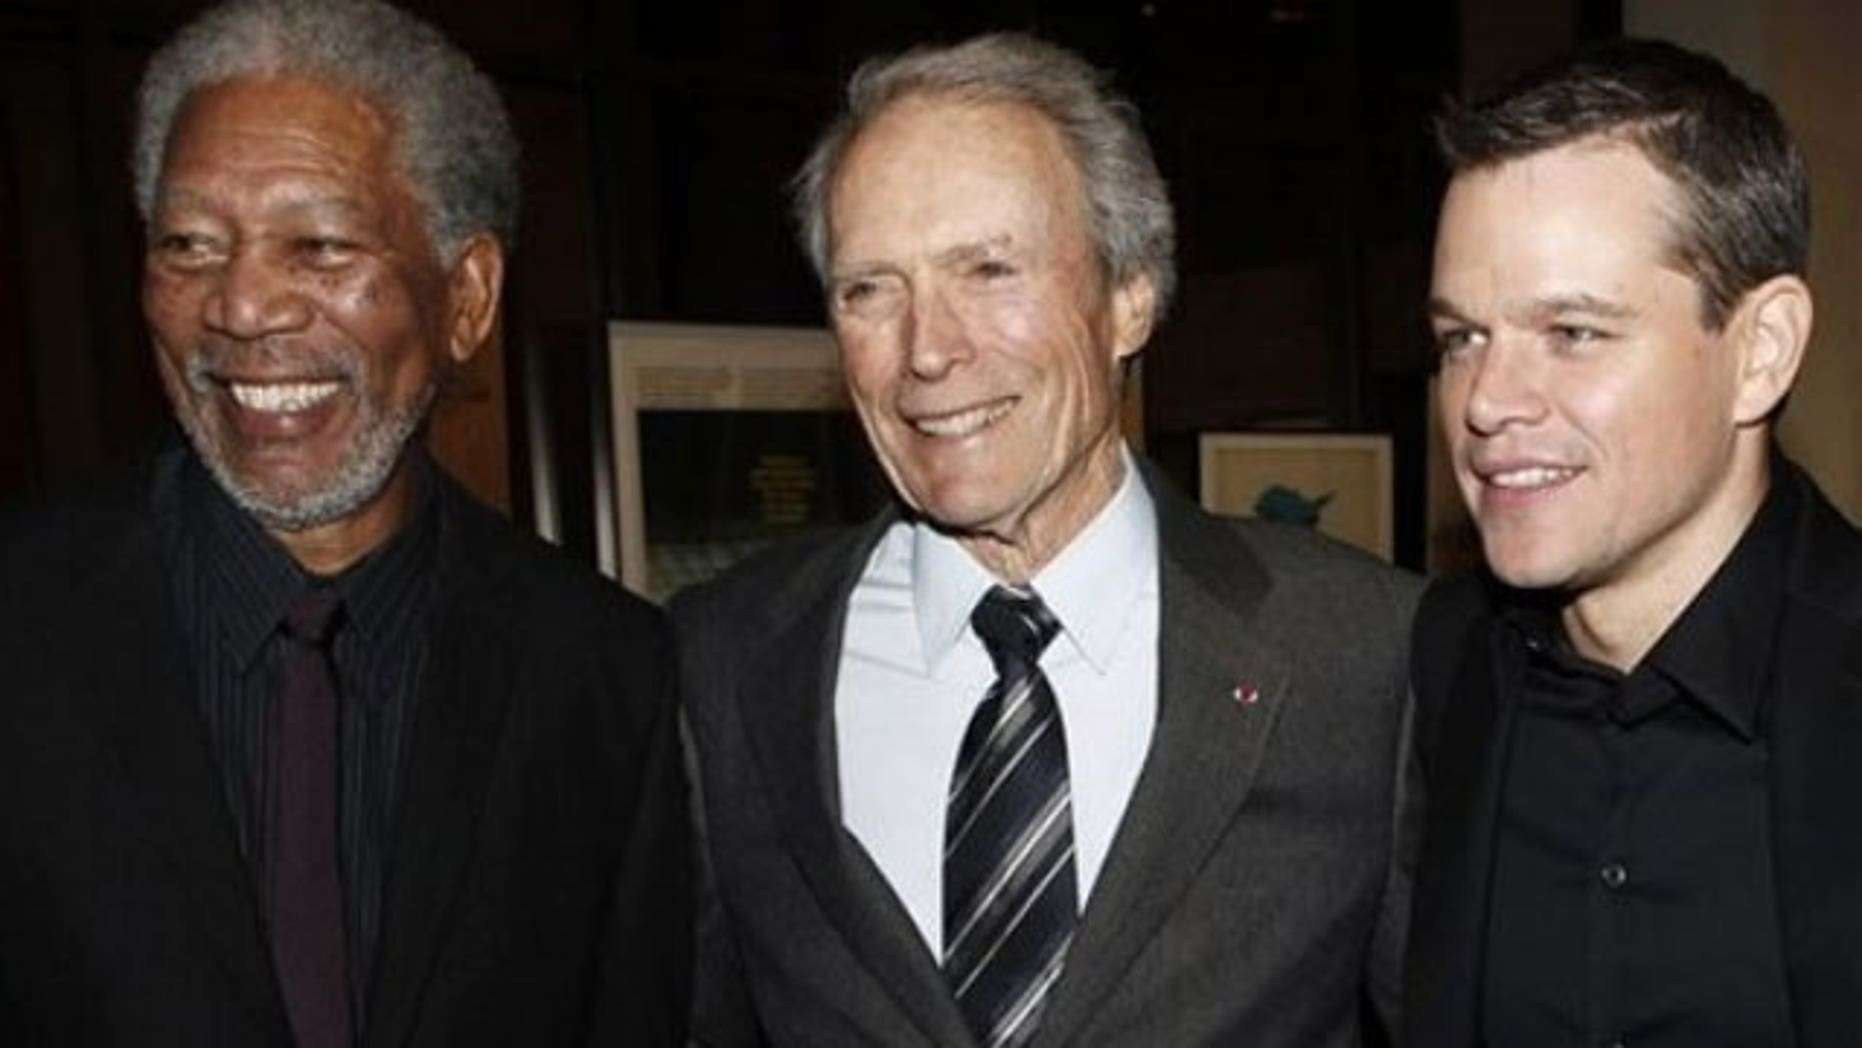 """Dec. 3: Director Clint Eastwood, center, and cast members Morgan Freeman, left, and Matt Damon pose together at the premiere of """"Invictus"""" in Beverly Hills, Calif."""